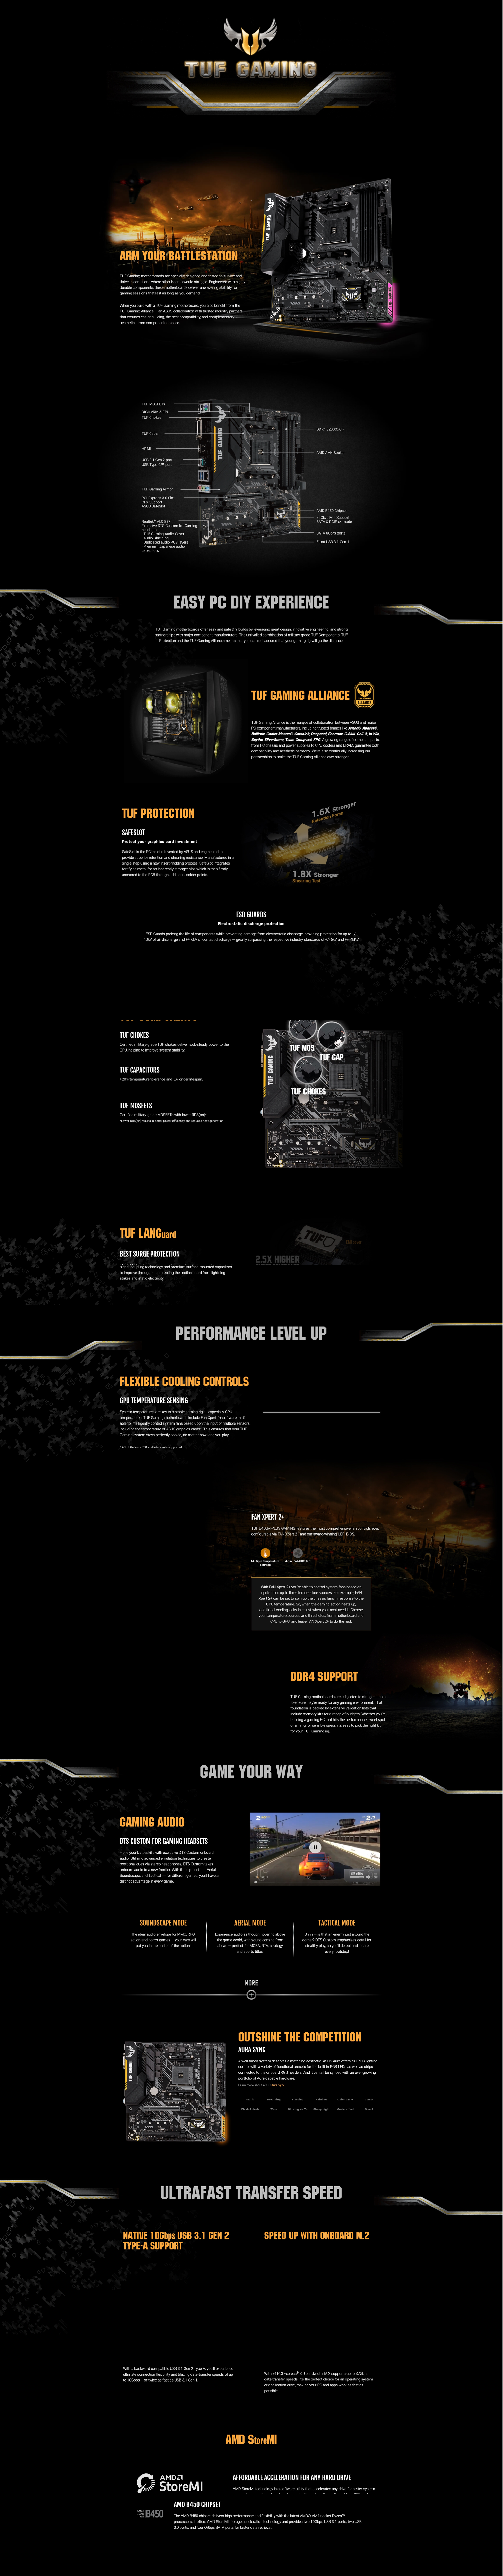 A large marketing image providing additional information about the product ASUS TUF B450M-PLUS Gaming AM4 mATX Desktop Motherboard - Additional alt info not provided